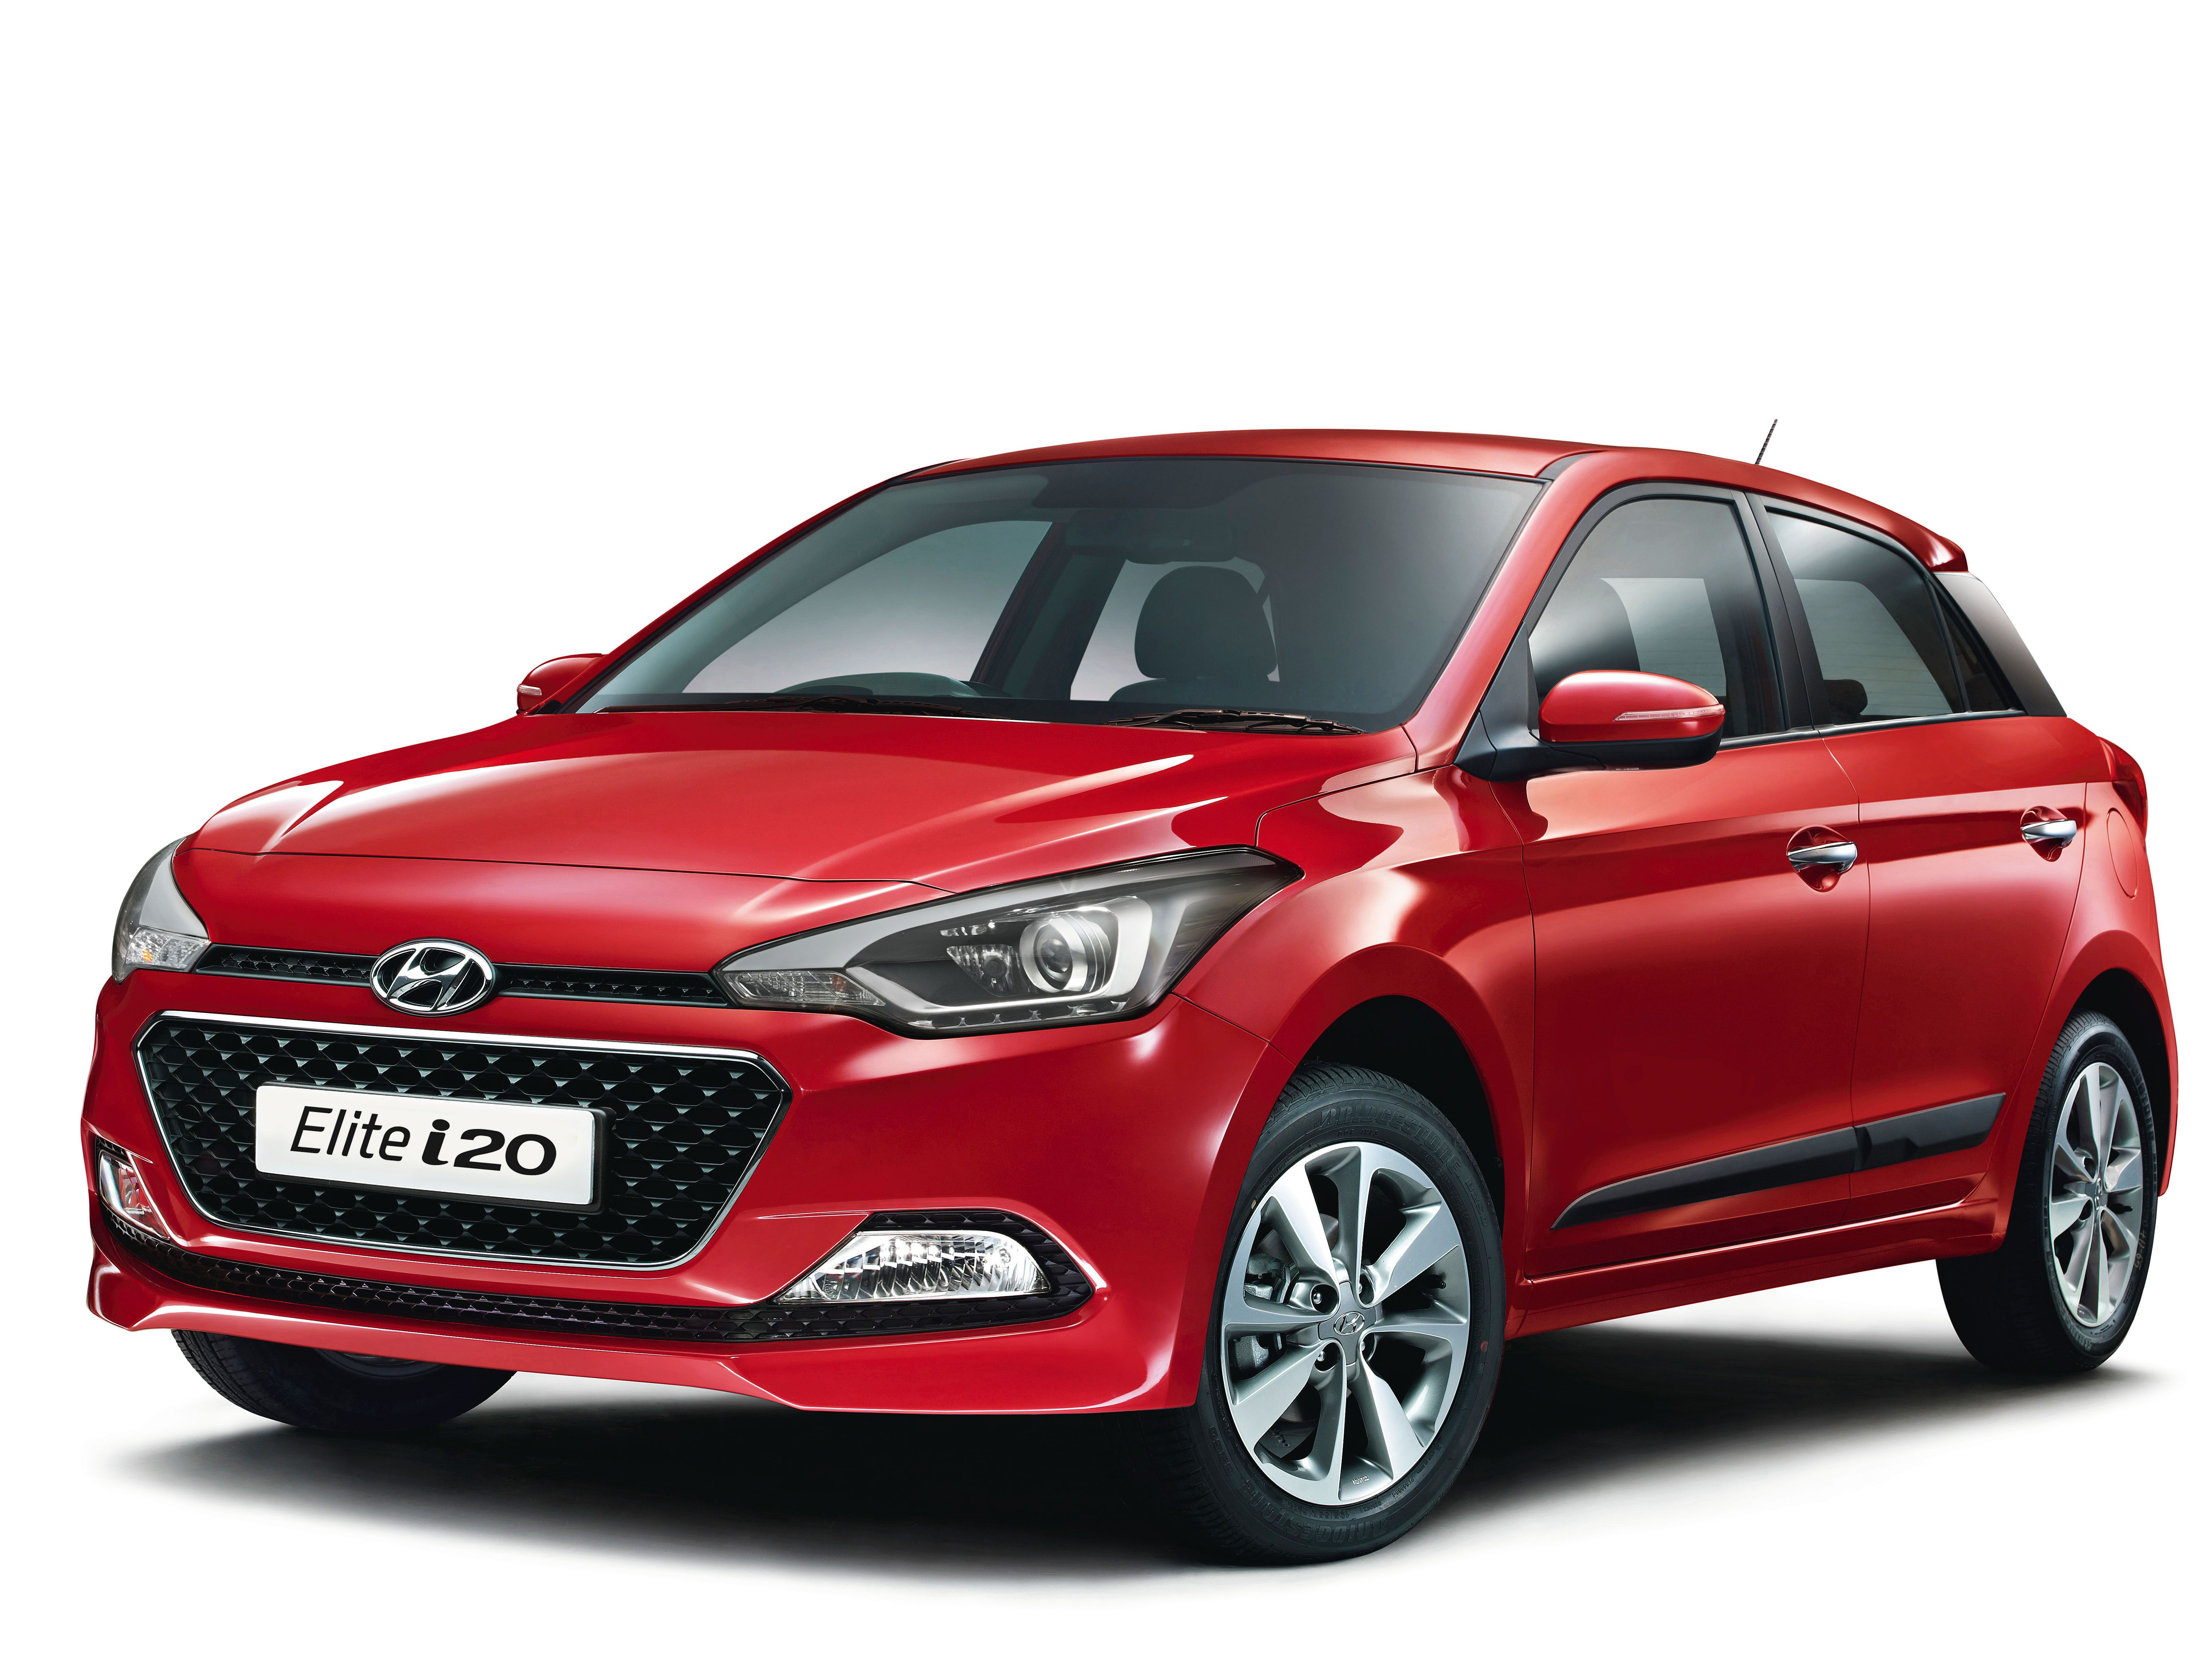 Global Auto News Provider From India New Hyundai Cars Hyundai Cars New Hyundai